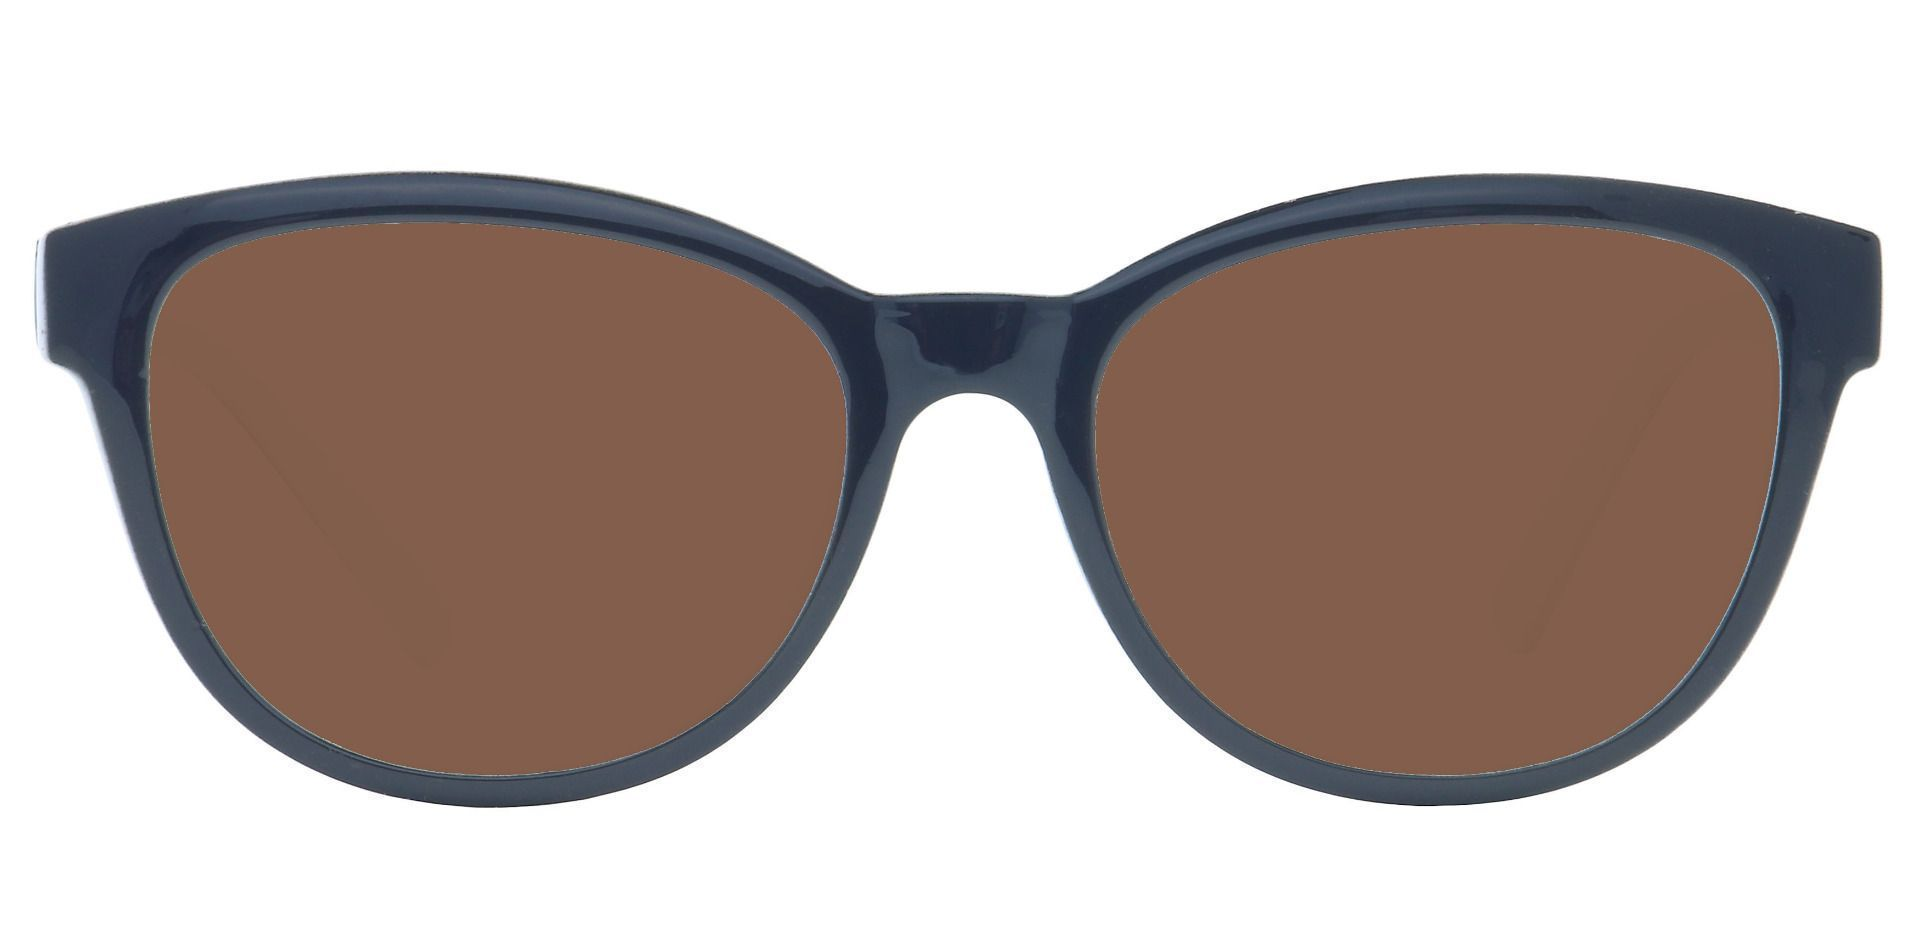 Amore Cat-Eye Prescription Sunglasses - Black Frame With Brown Lenses